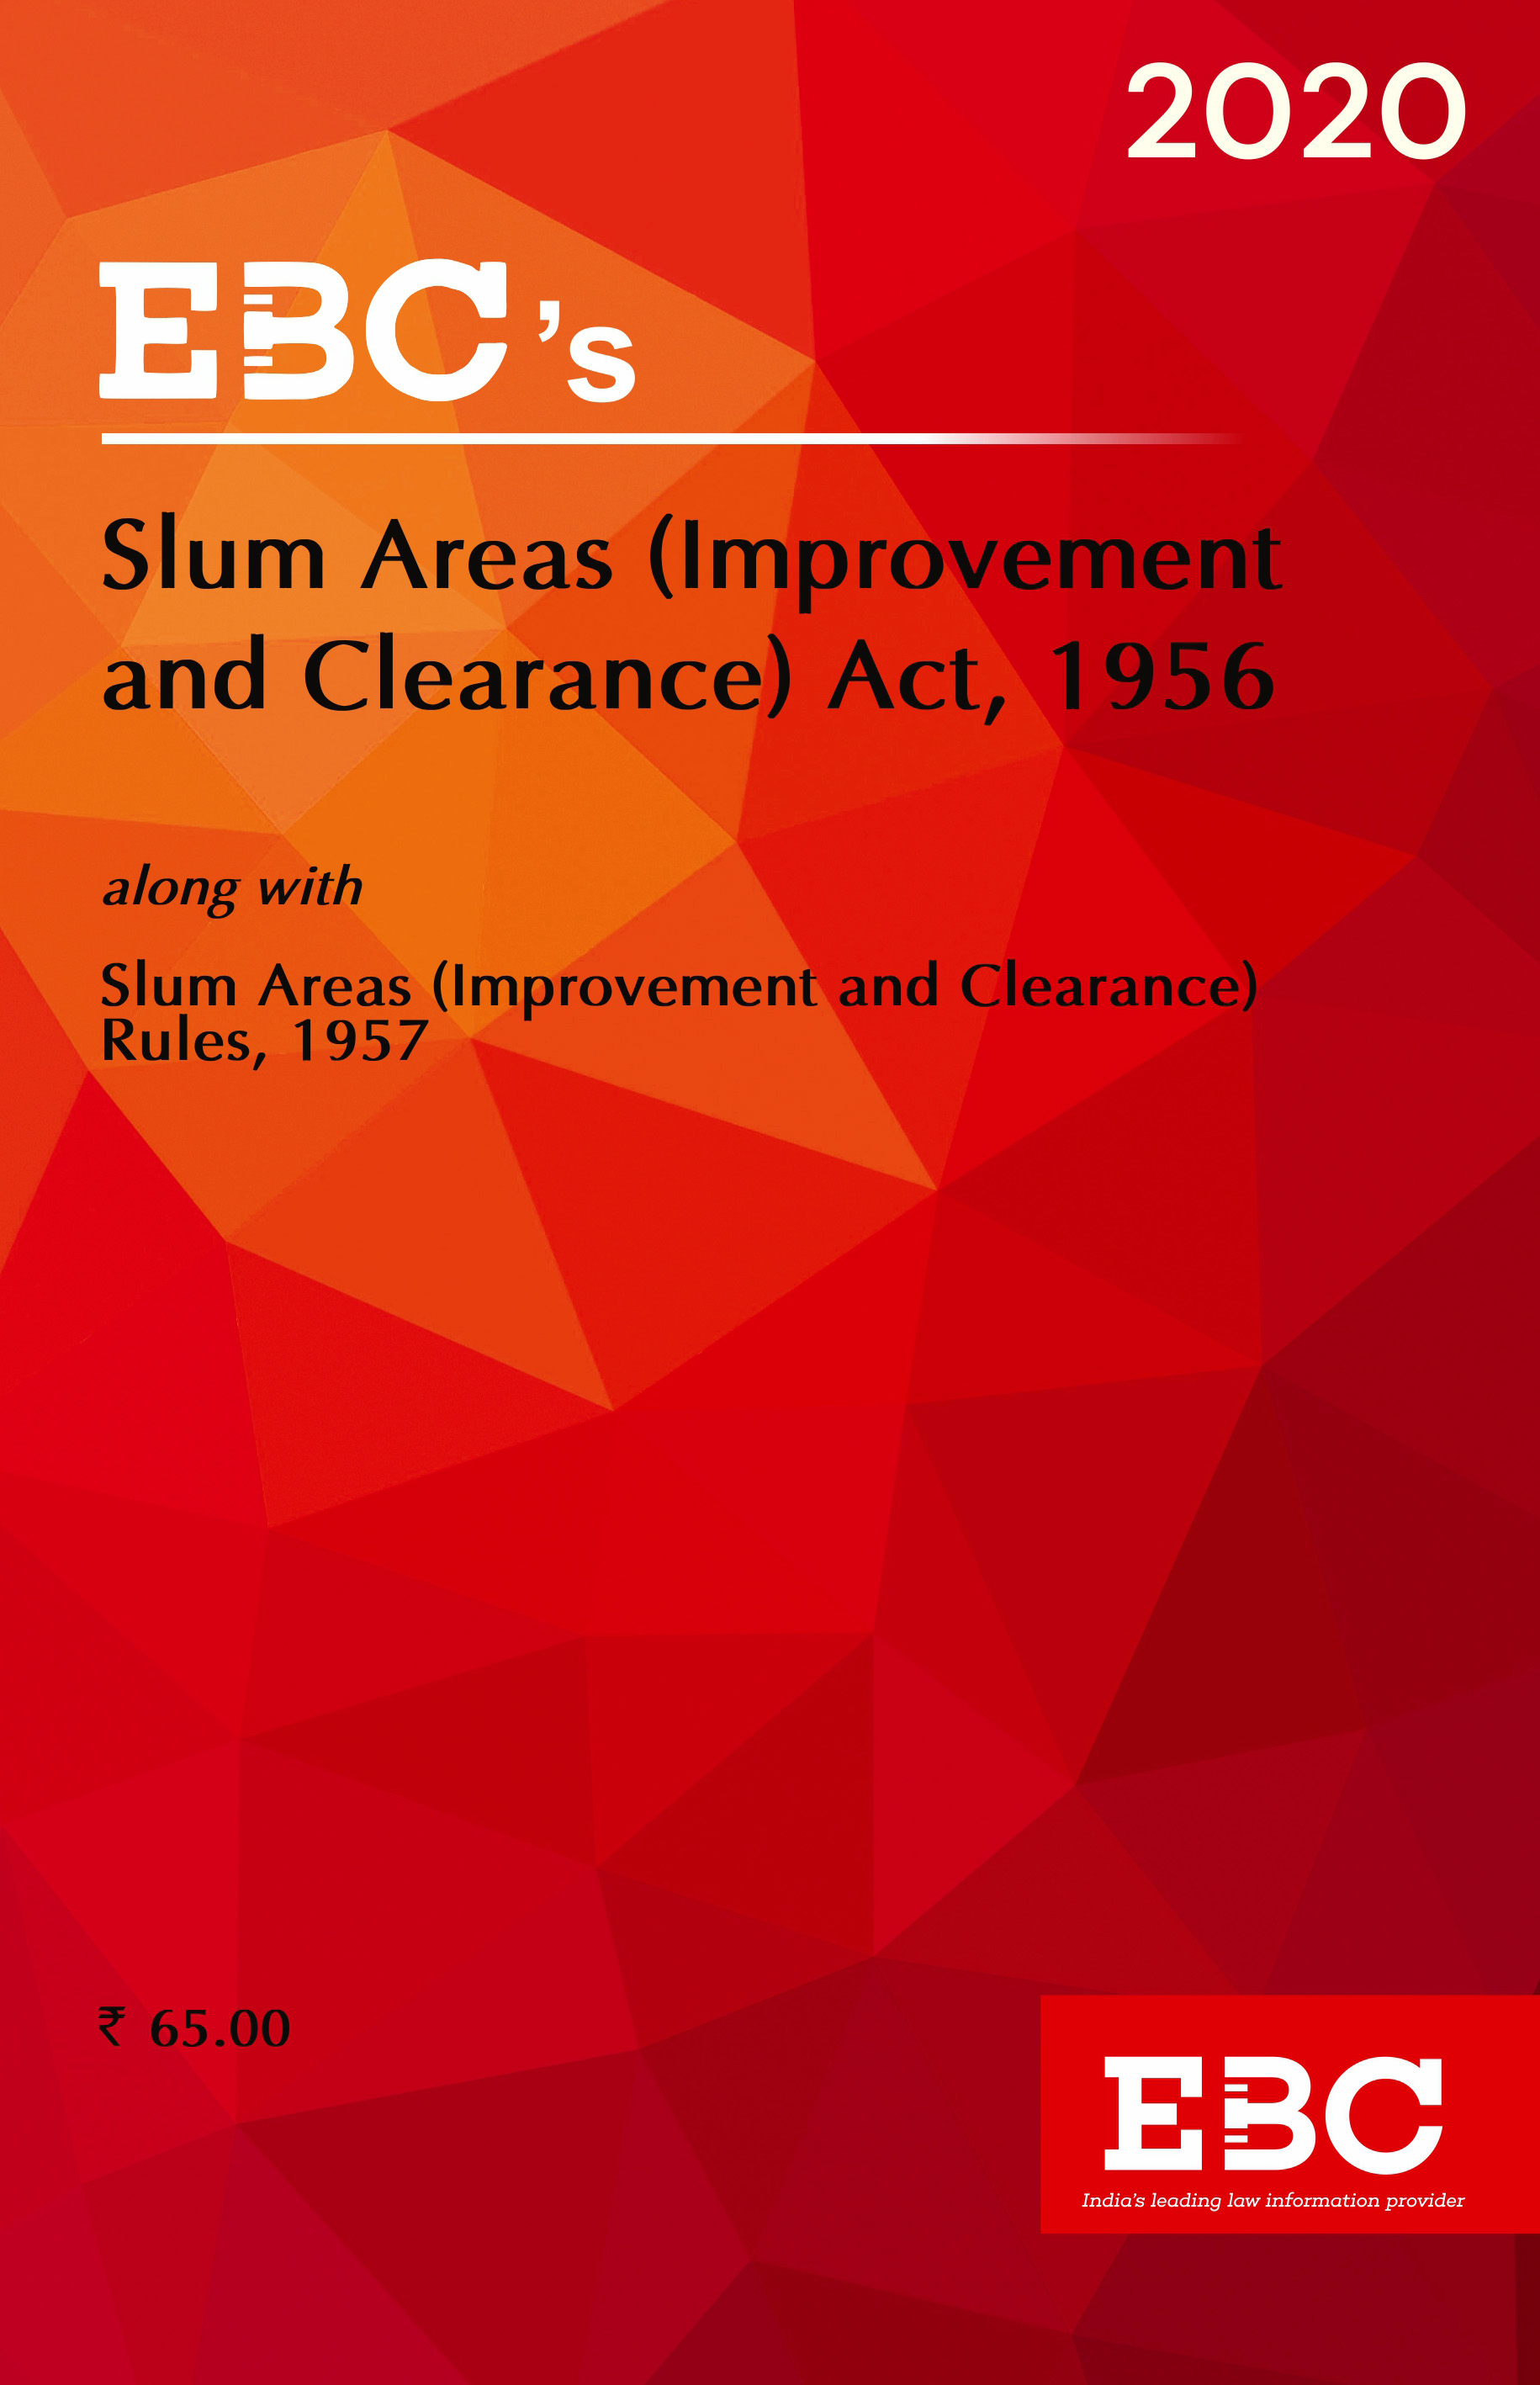 Slum Areas (Improvement and Clearance) Act, 1956